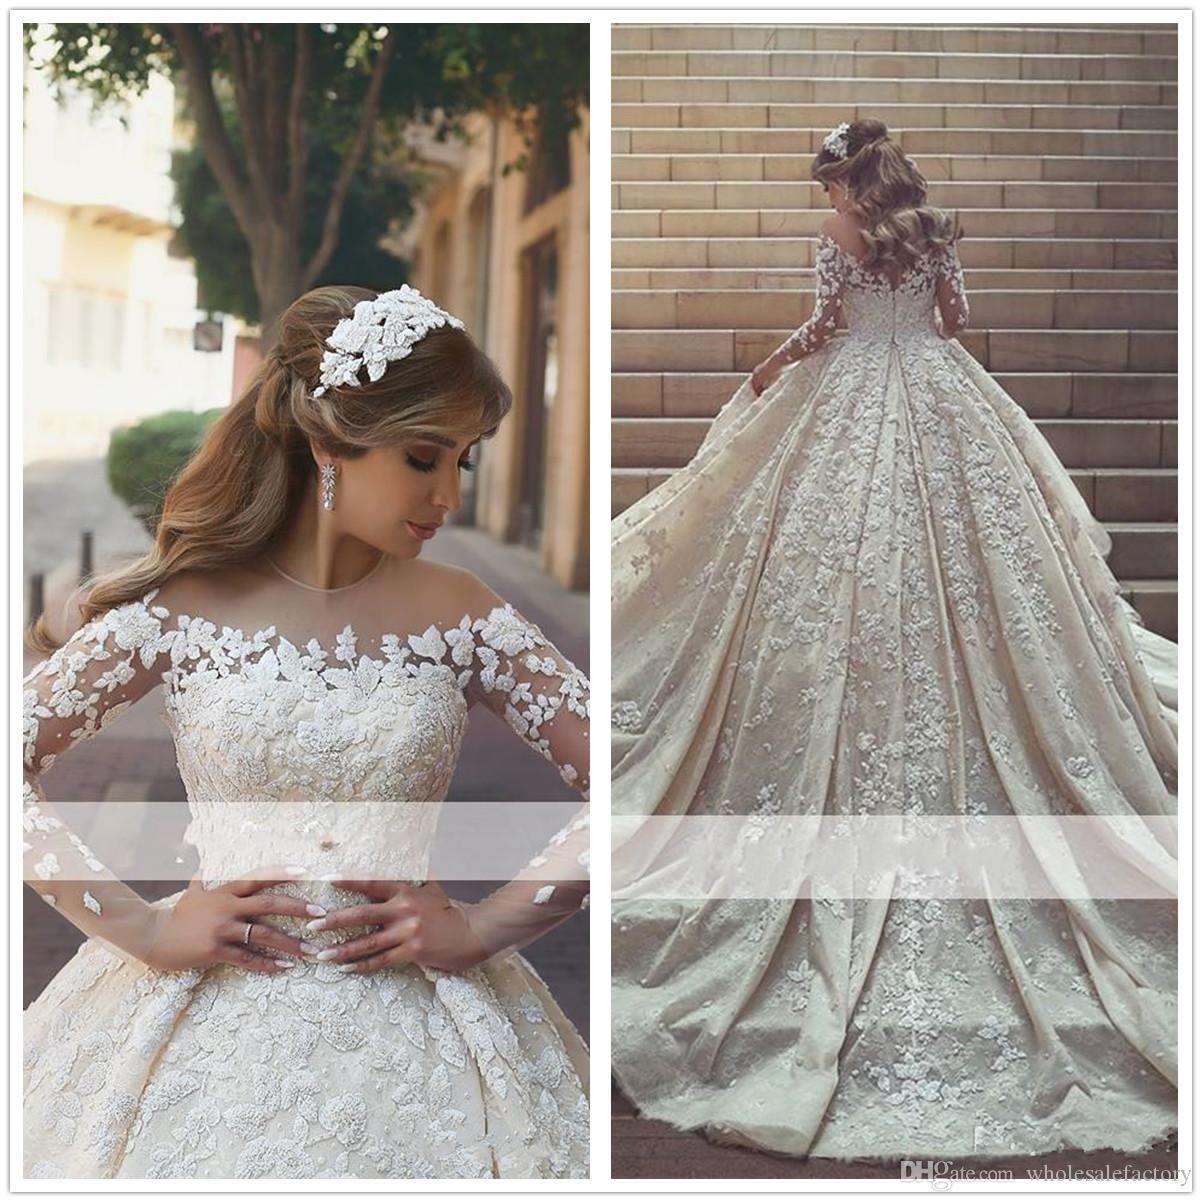 7dee83a4443 2018 Arabic Sheer Long Sleeves Lace Ball Gown Wedding Dresses Ruched Applique  Beaded Stones Sweep Train Bridal Wedding Gowns Wedding Dresses 2014 Ball  Gown ...